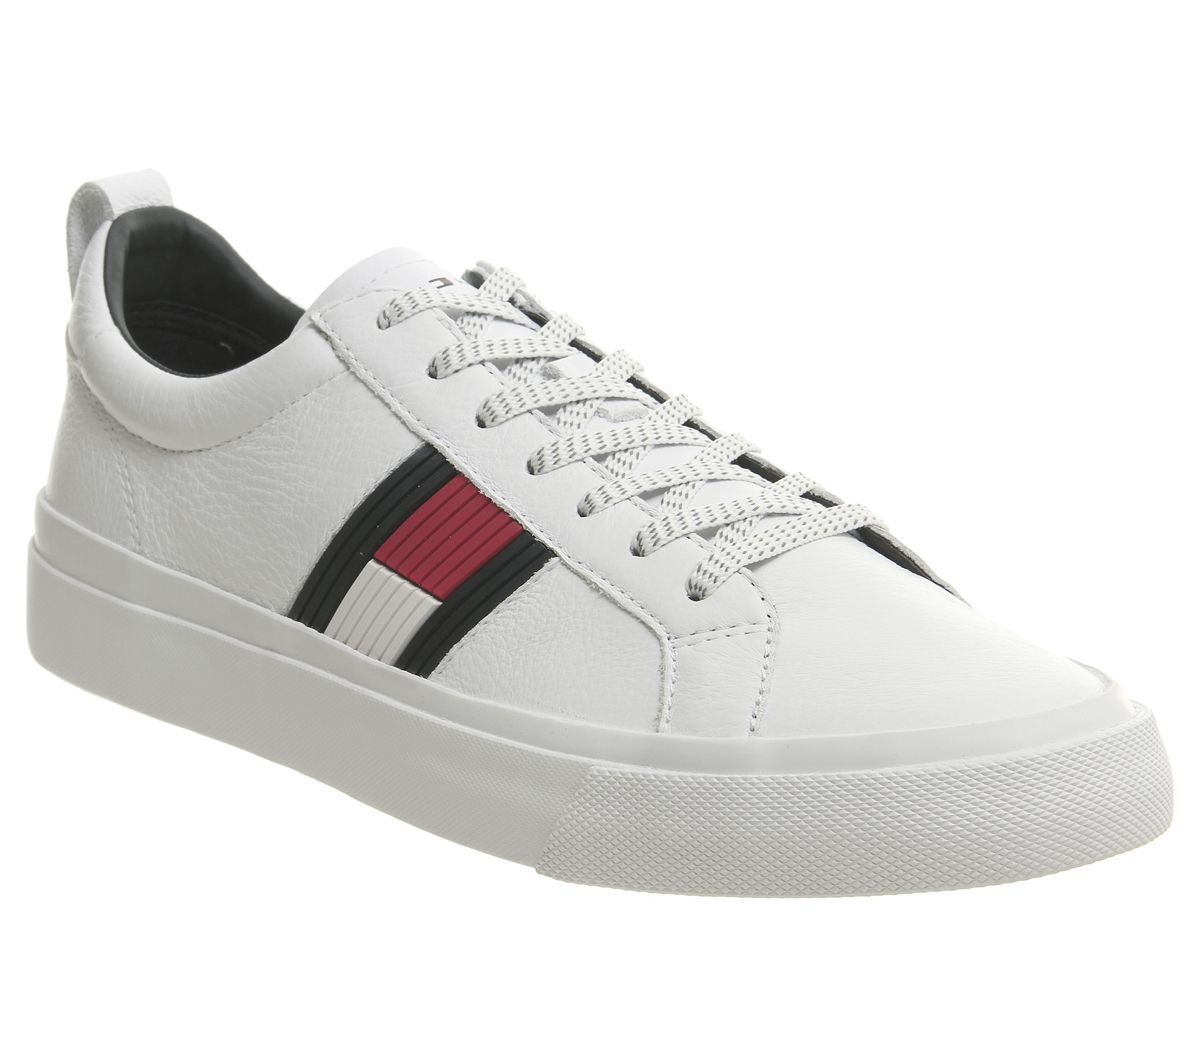 29e6727a5 Tommy Hilfiger Flag Detail Trainers White - Casual